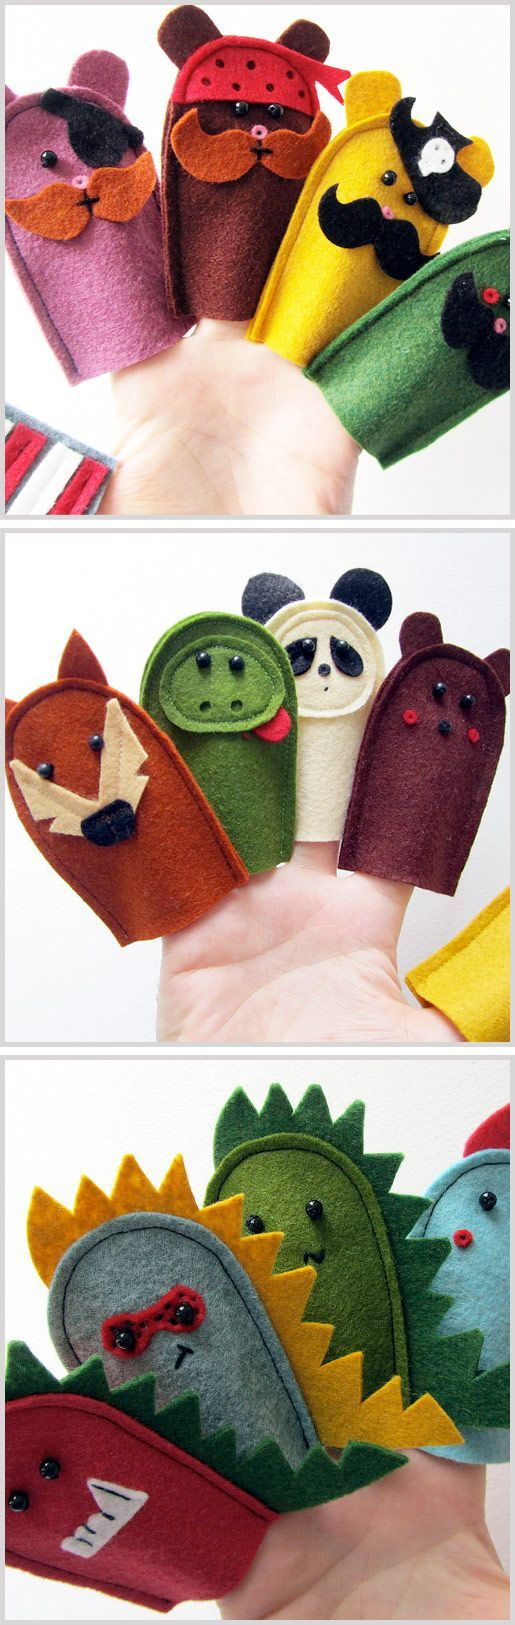 Pirate Bears, Dinosaurs, Wildlife, Handmade, Finger Puppets, The Big Forest